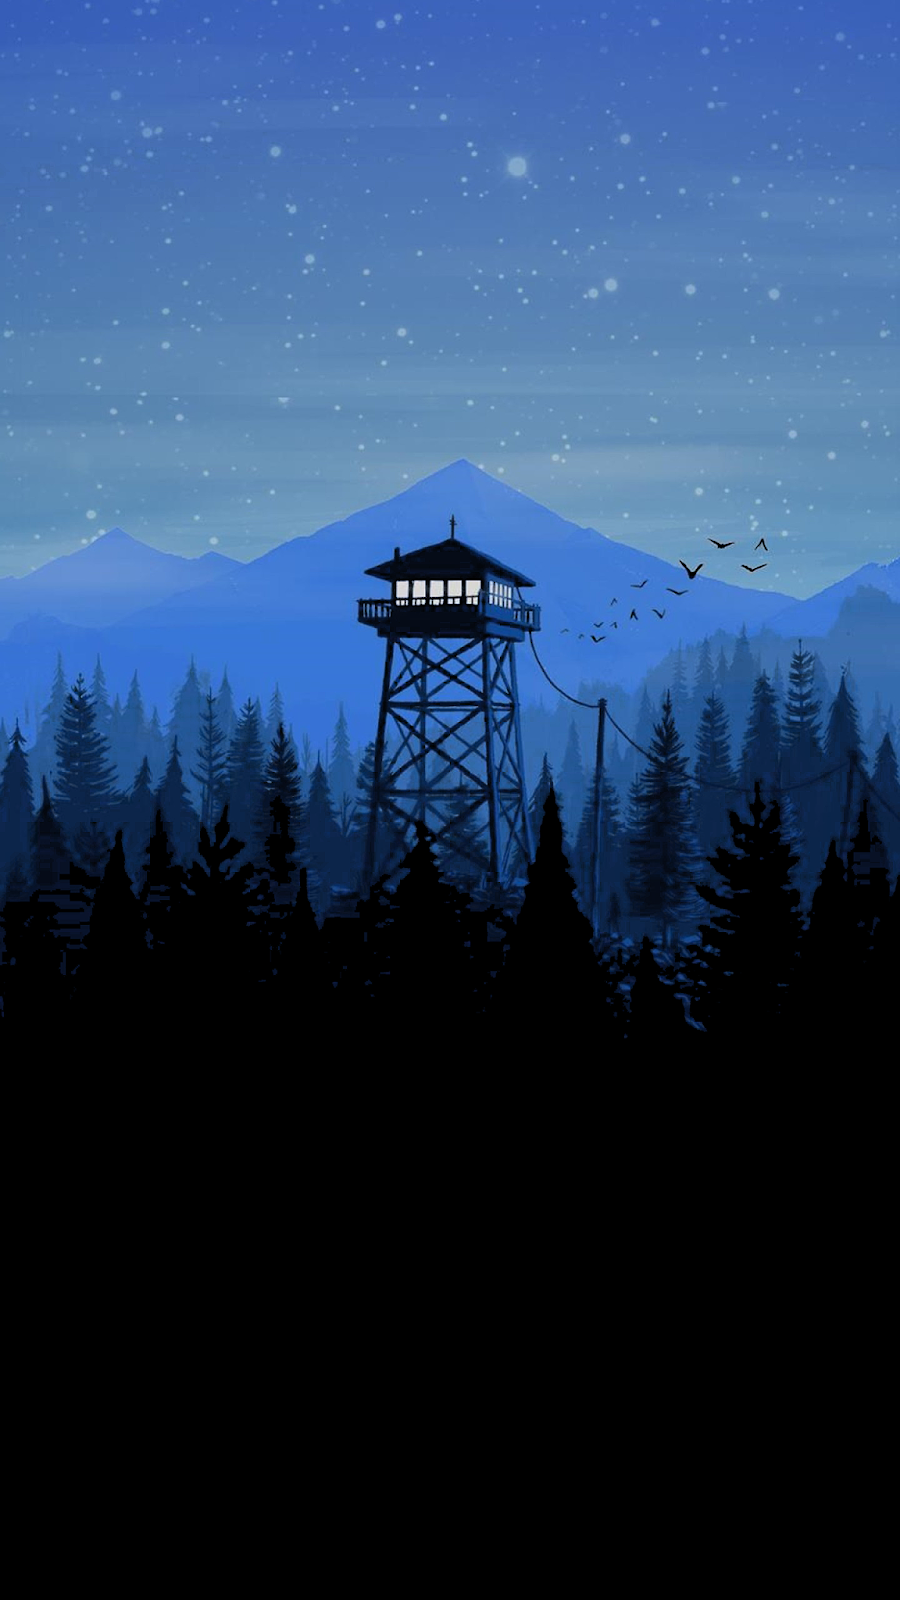 Another Firewatch Wallpaper For Amoled Display Wallpaper Iphone Android Scenery Wallpaper Minimal Wallpaper Ipad Wallpaper Watercolor